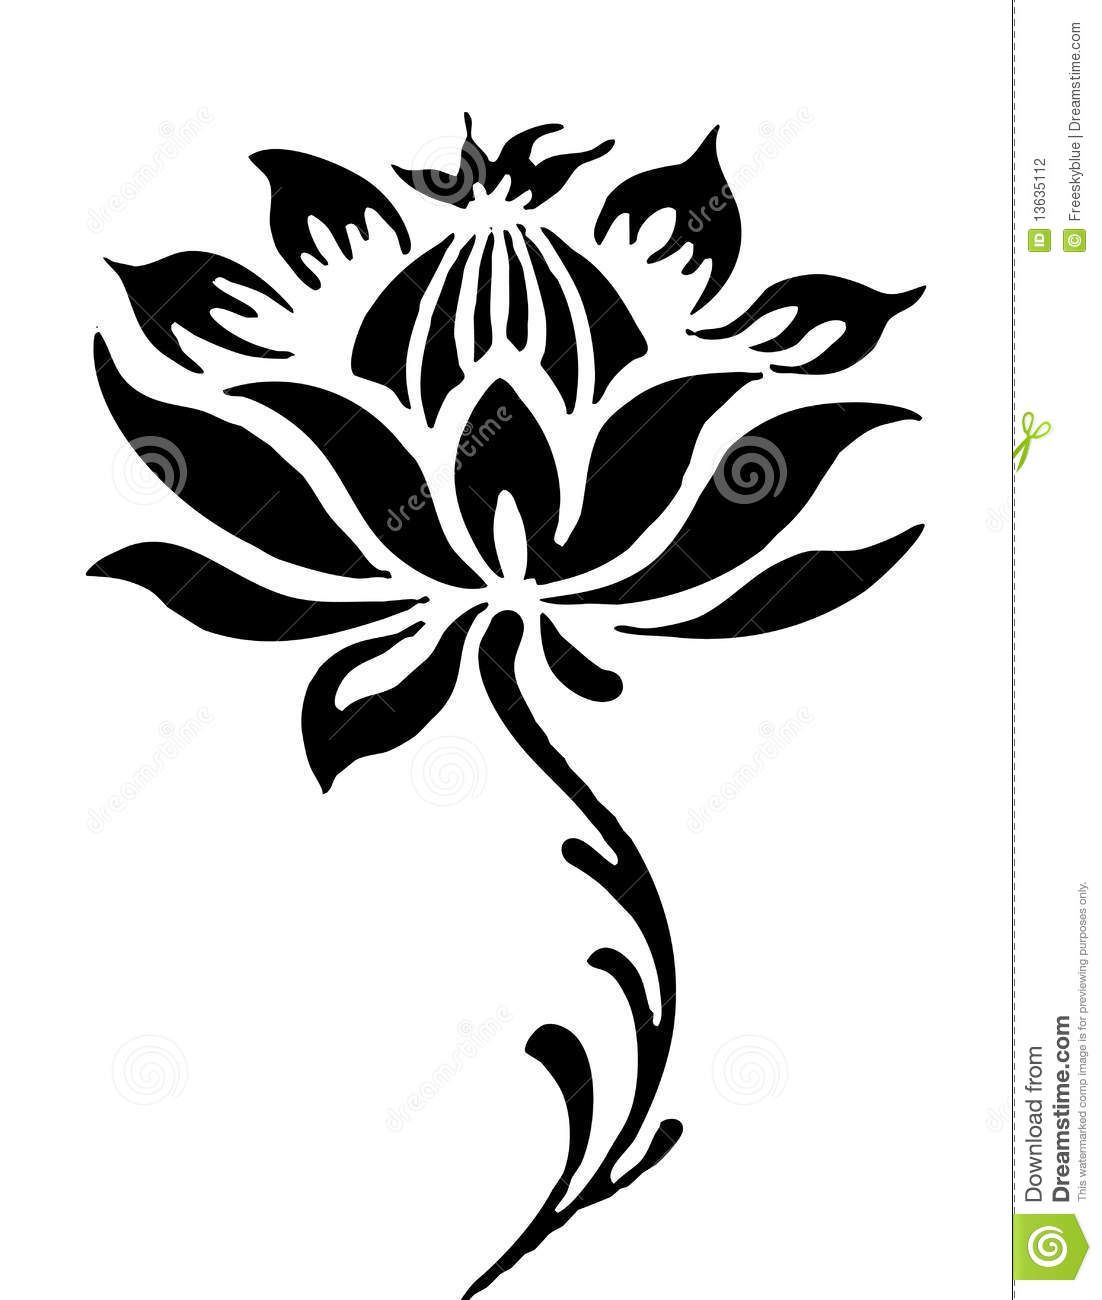 Lotus flower pattern download from over 28 million high quality lotus flower pattern download from over 28 million high quality stock photos images vectors sign up for free today image 13635112 izmirmasajfo